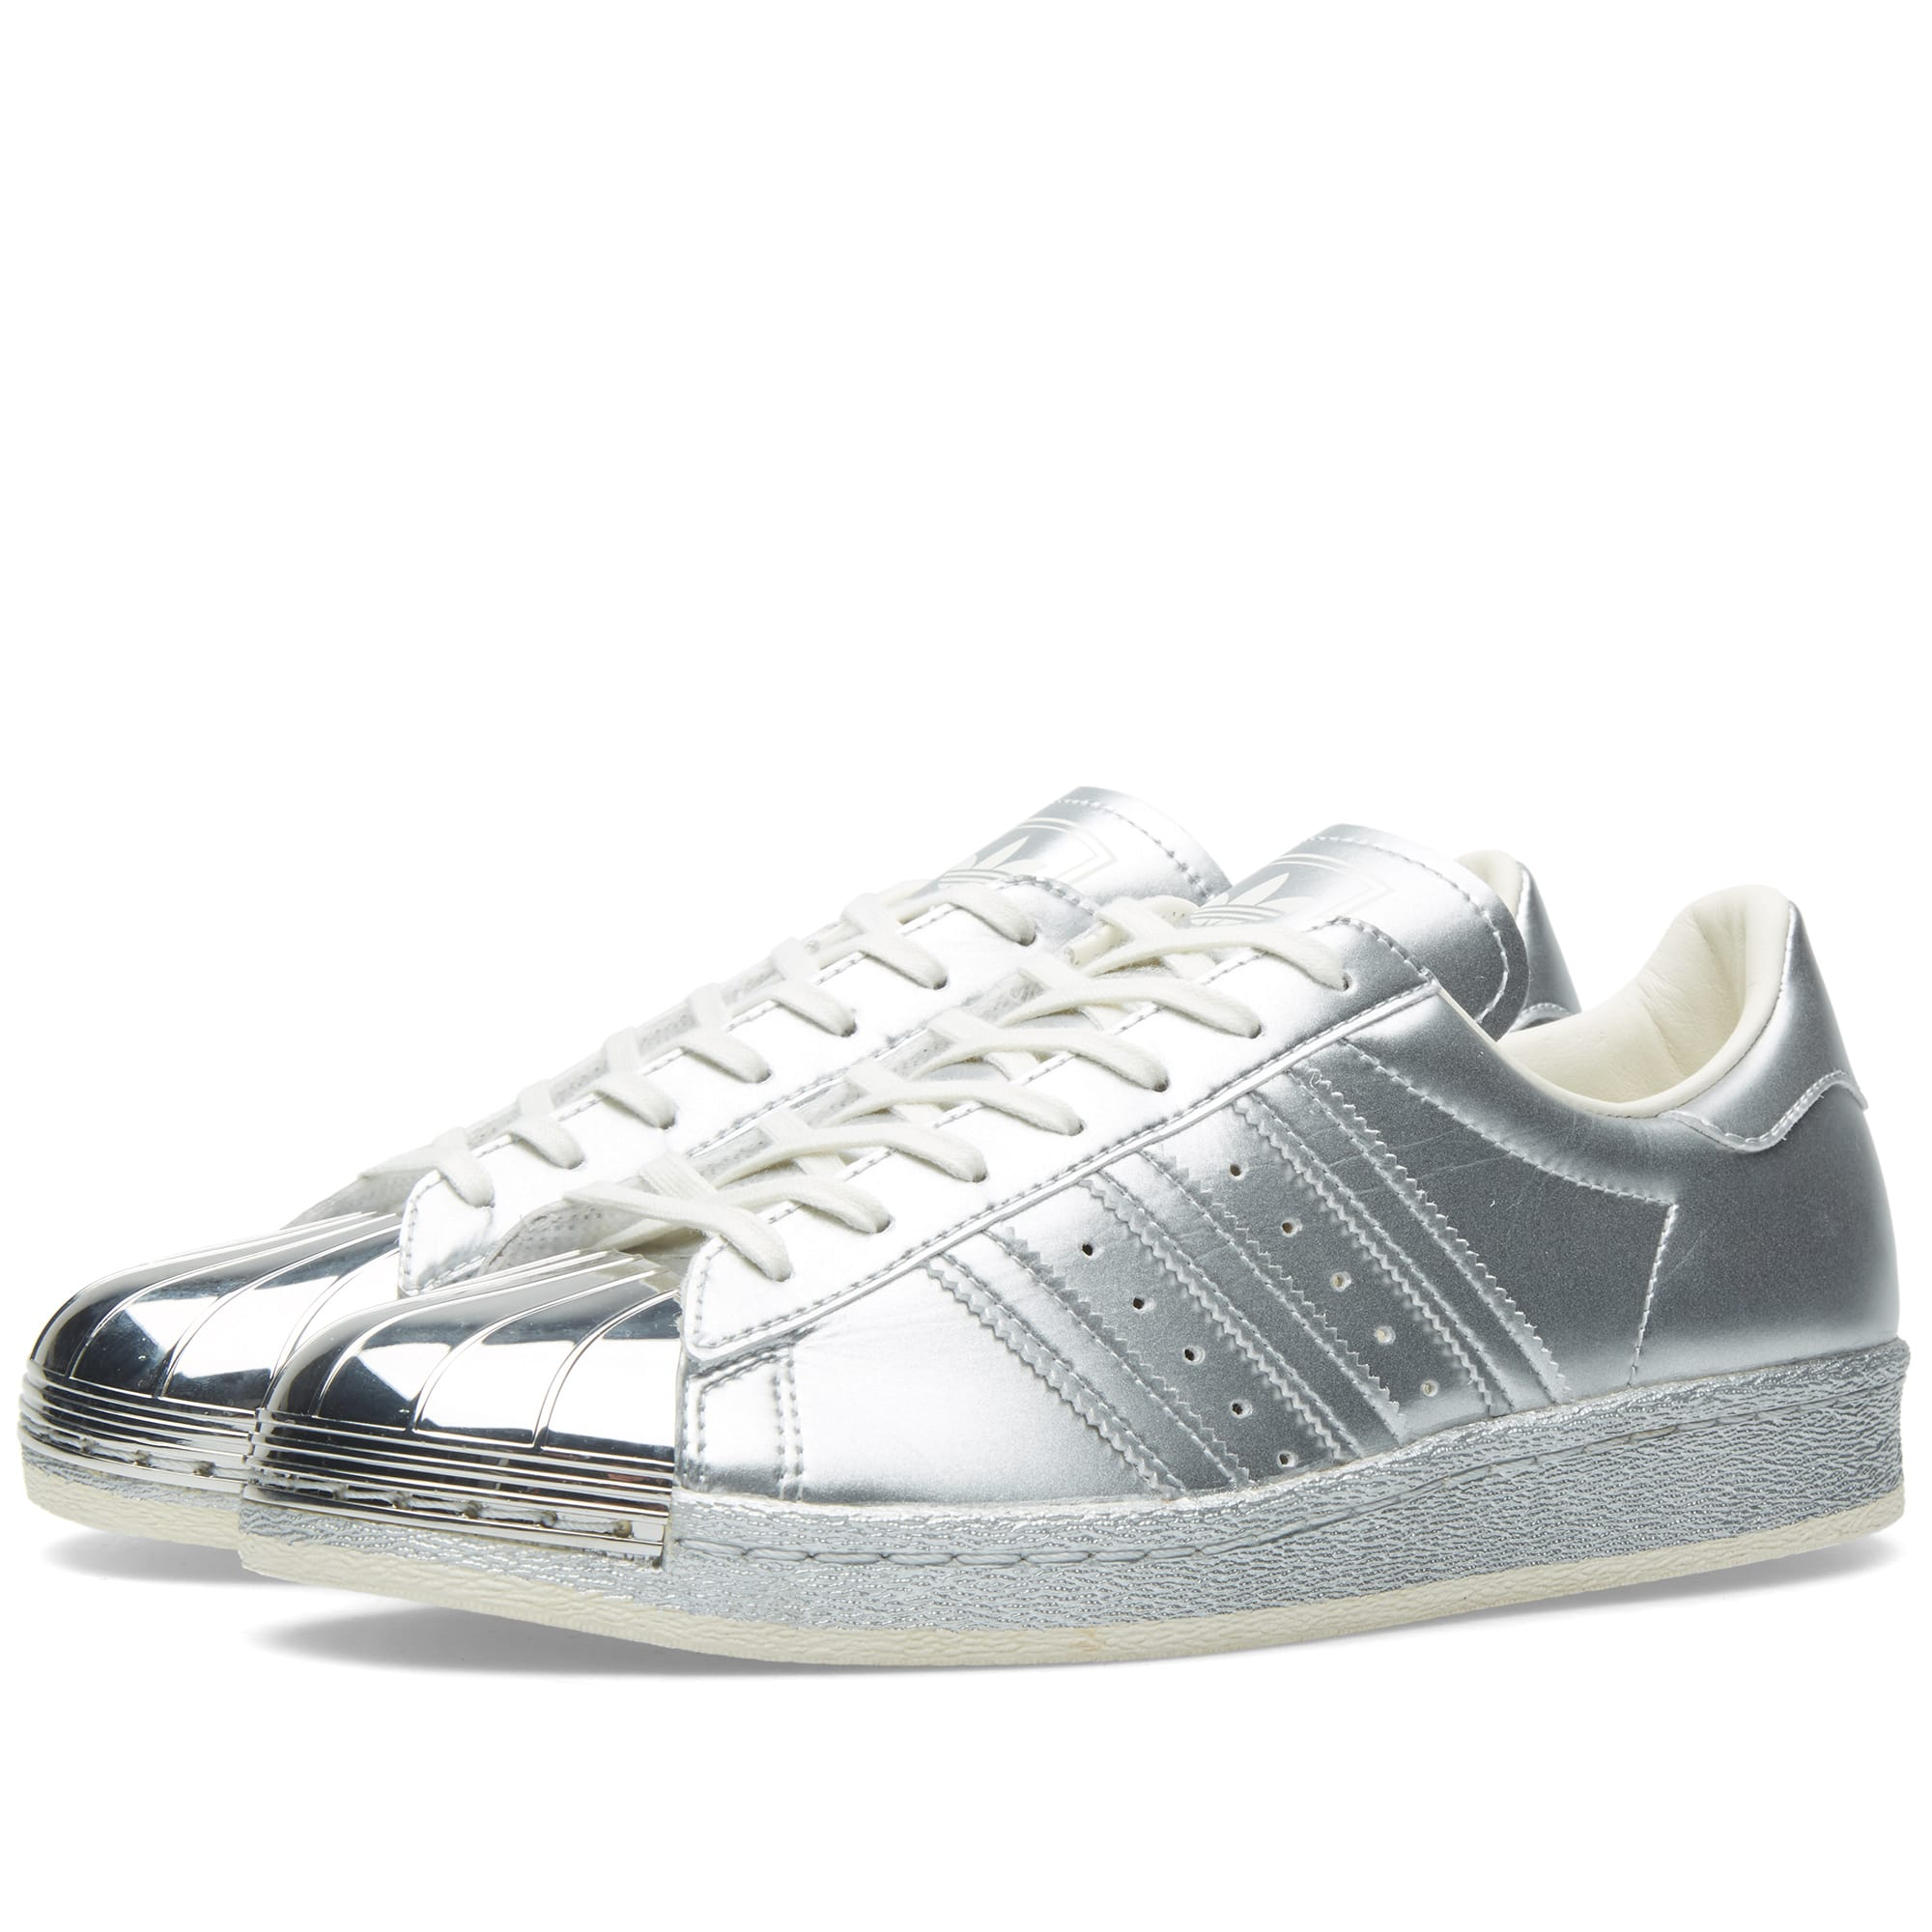 Silver Adidas Superstars